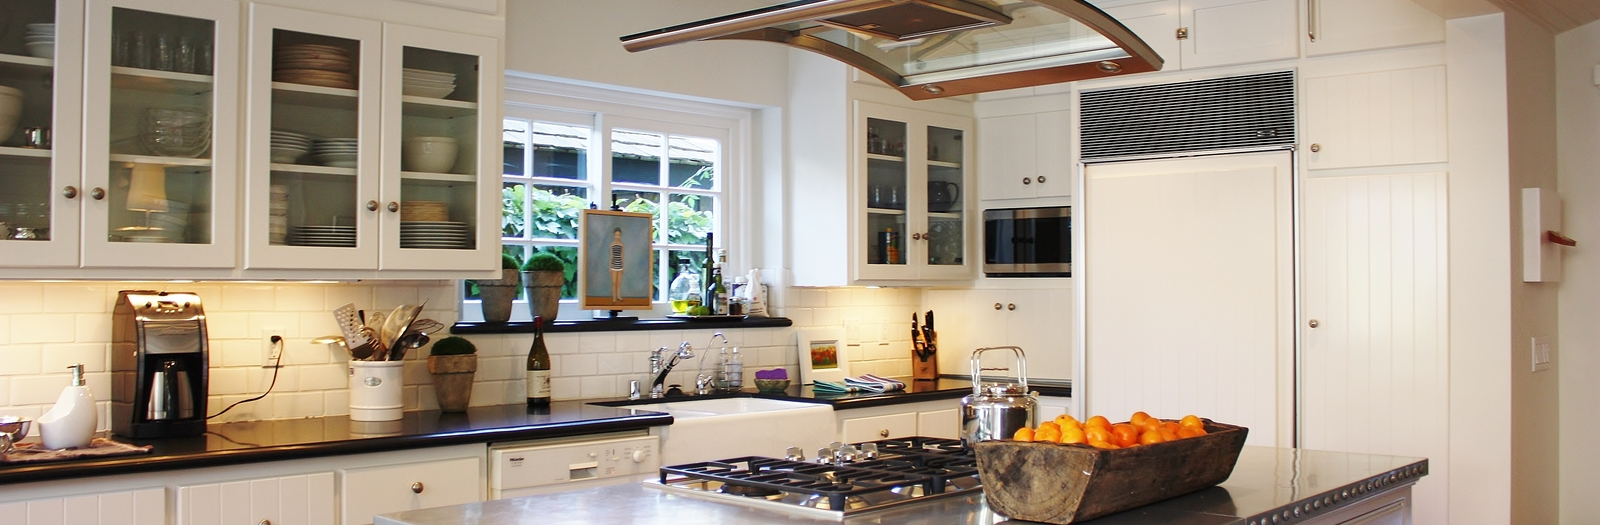 Transitional Kitchen with glass and stainless steel range hood